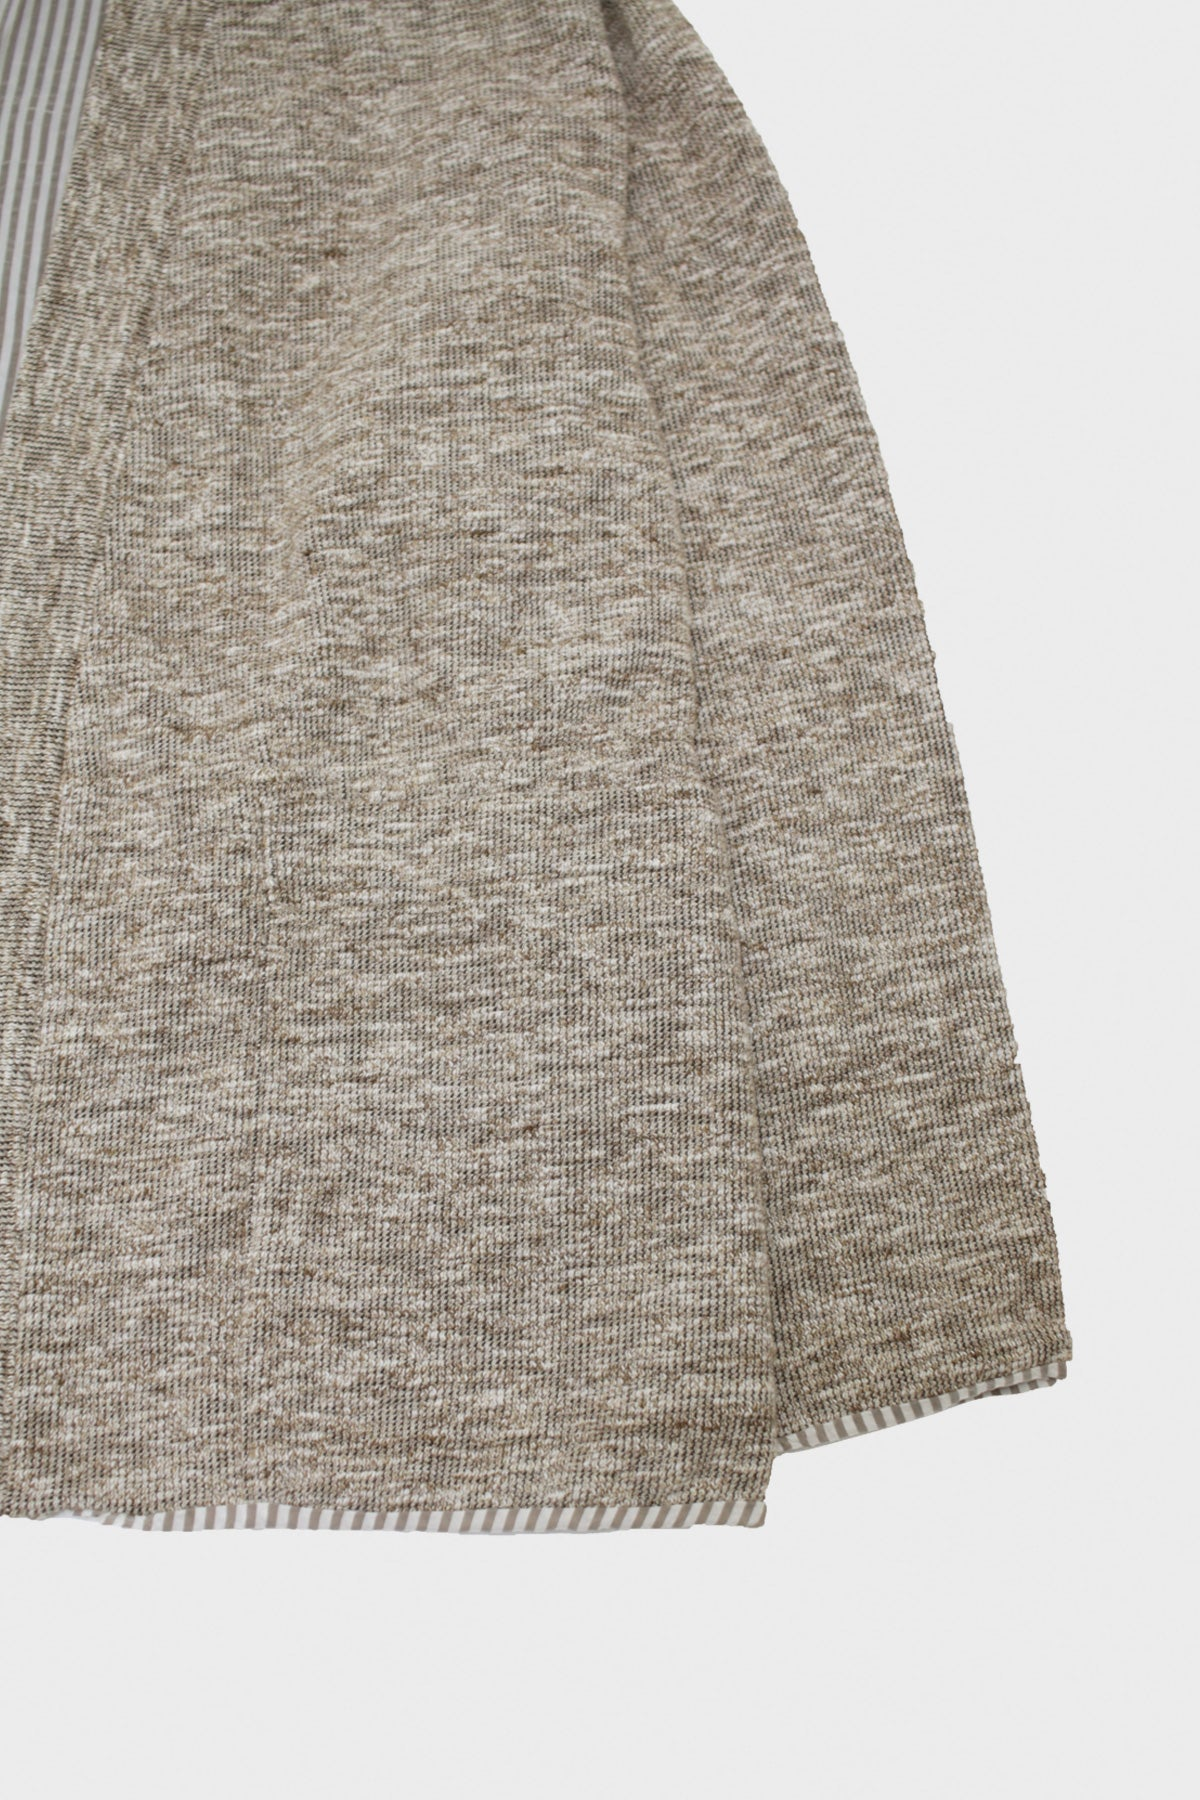 ts(s) - Lined Easy Cardigan -Brown - Canoe Club